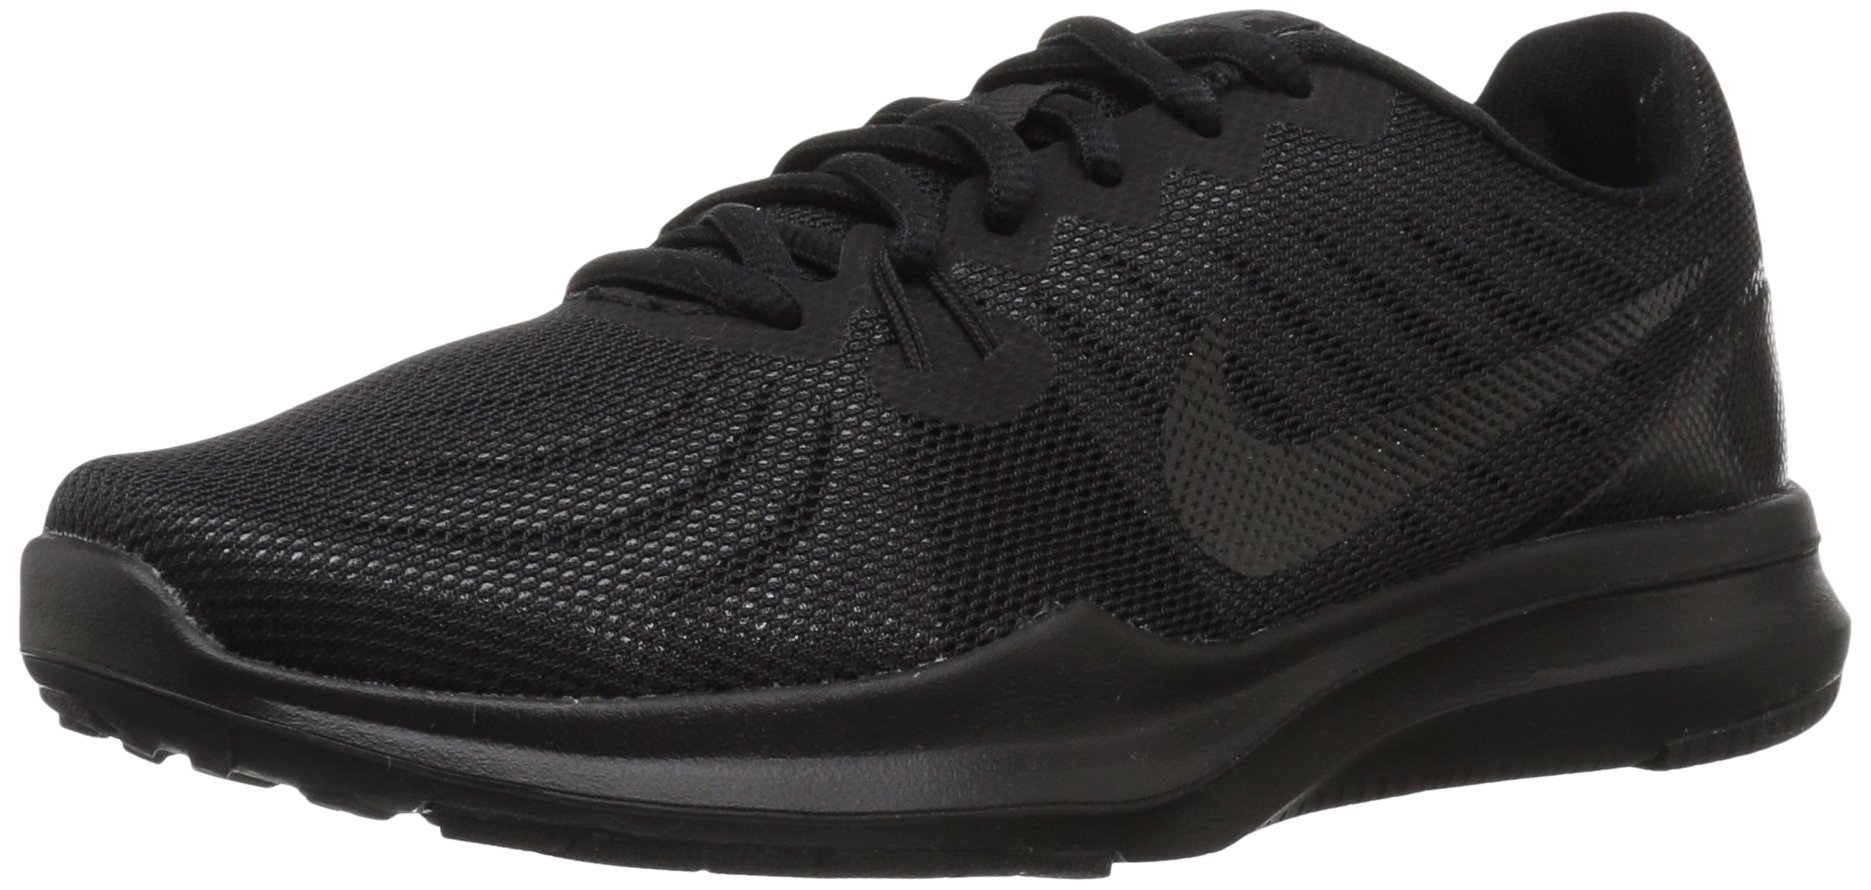 Nike Women's in-Season Trainer 7 Cross Anthracite-Black, 5.5 Regular US by Nike